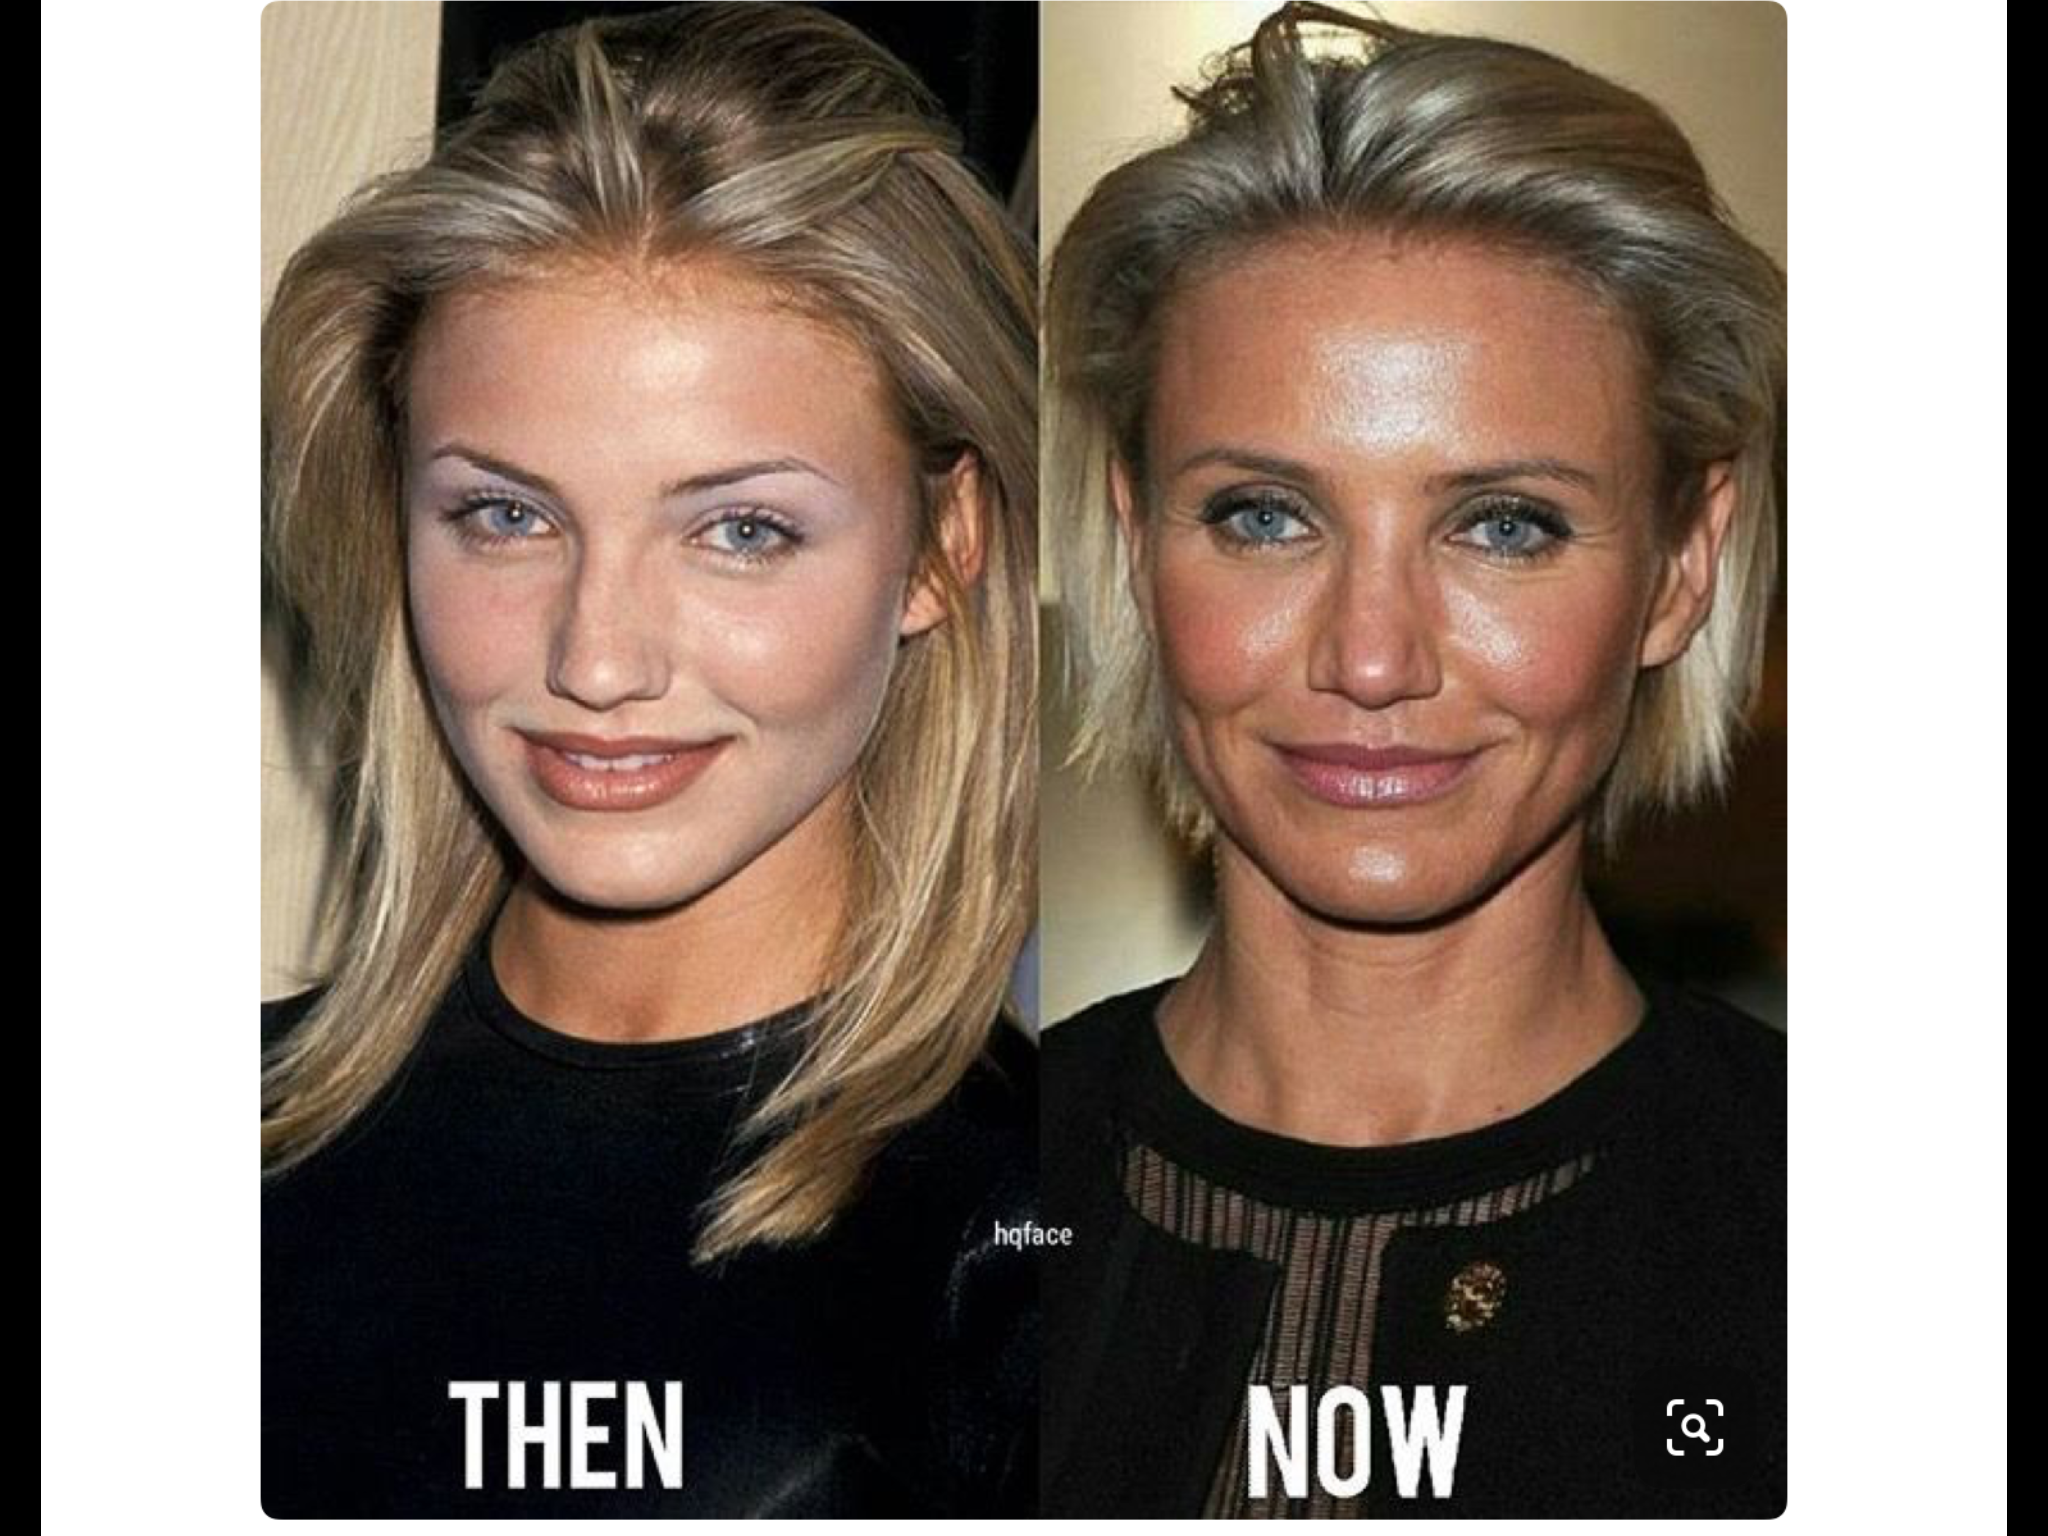 Pin by 1 616-916-0249 on Then and Now | Makeup tips